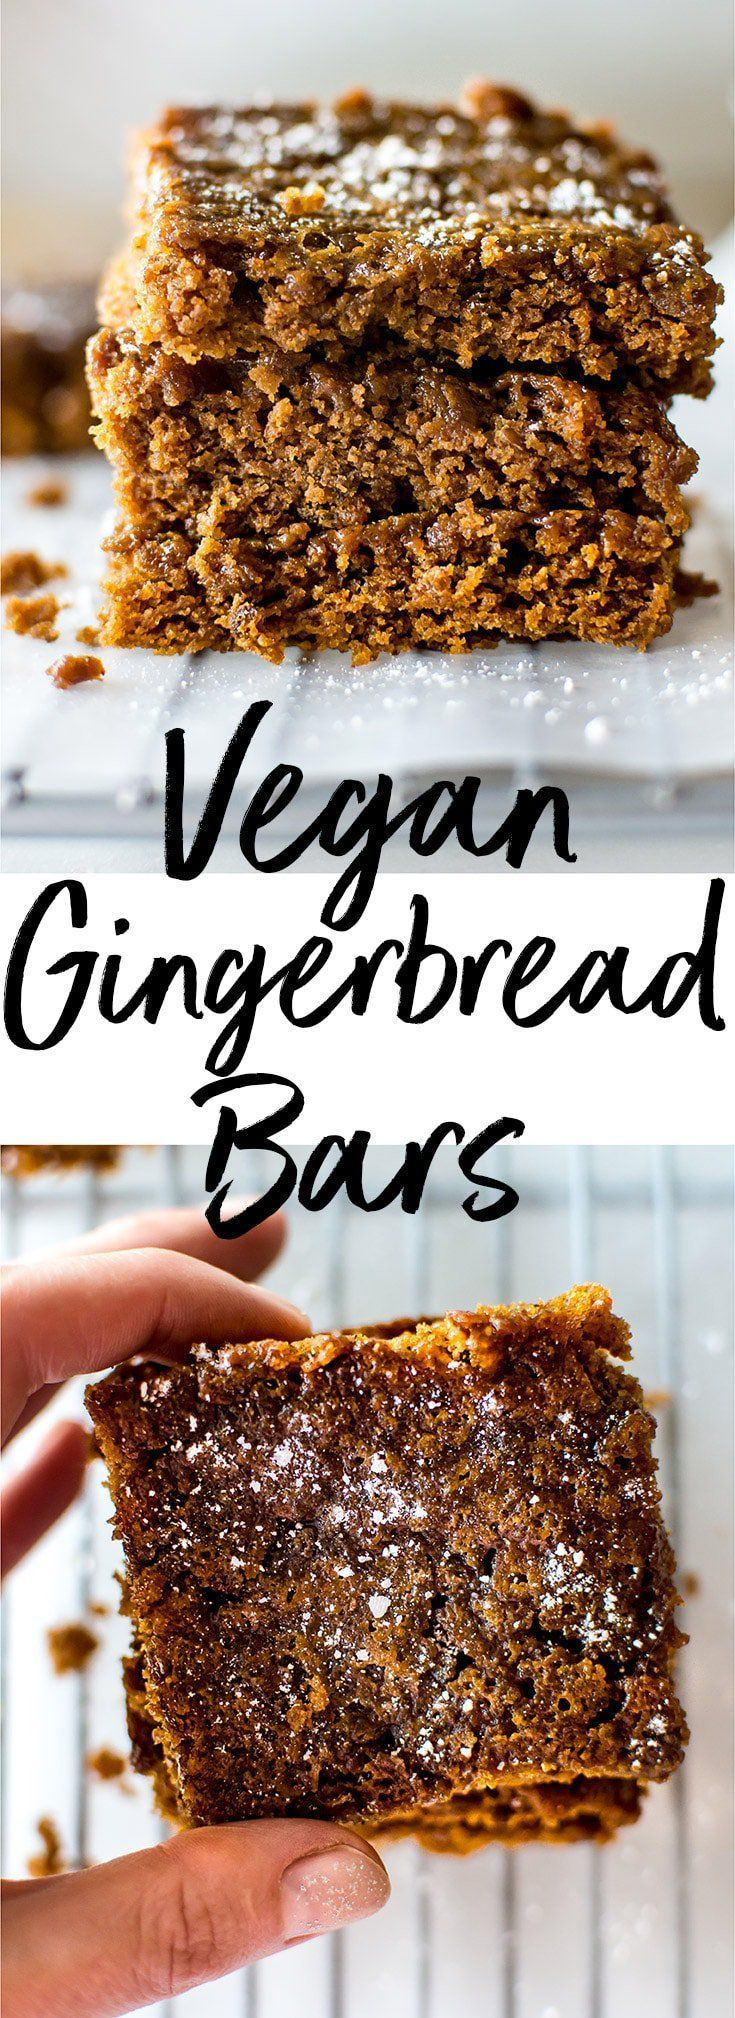 These vegan gingerbread bars are sweet, sticky, easy to make, and wonderfully festive.